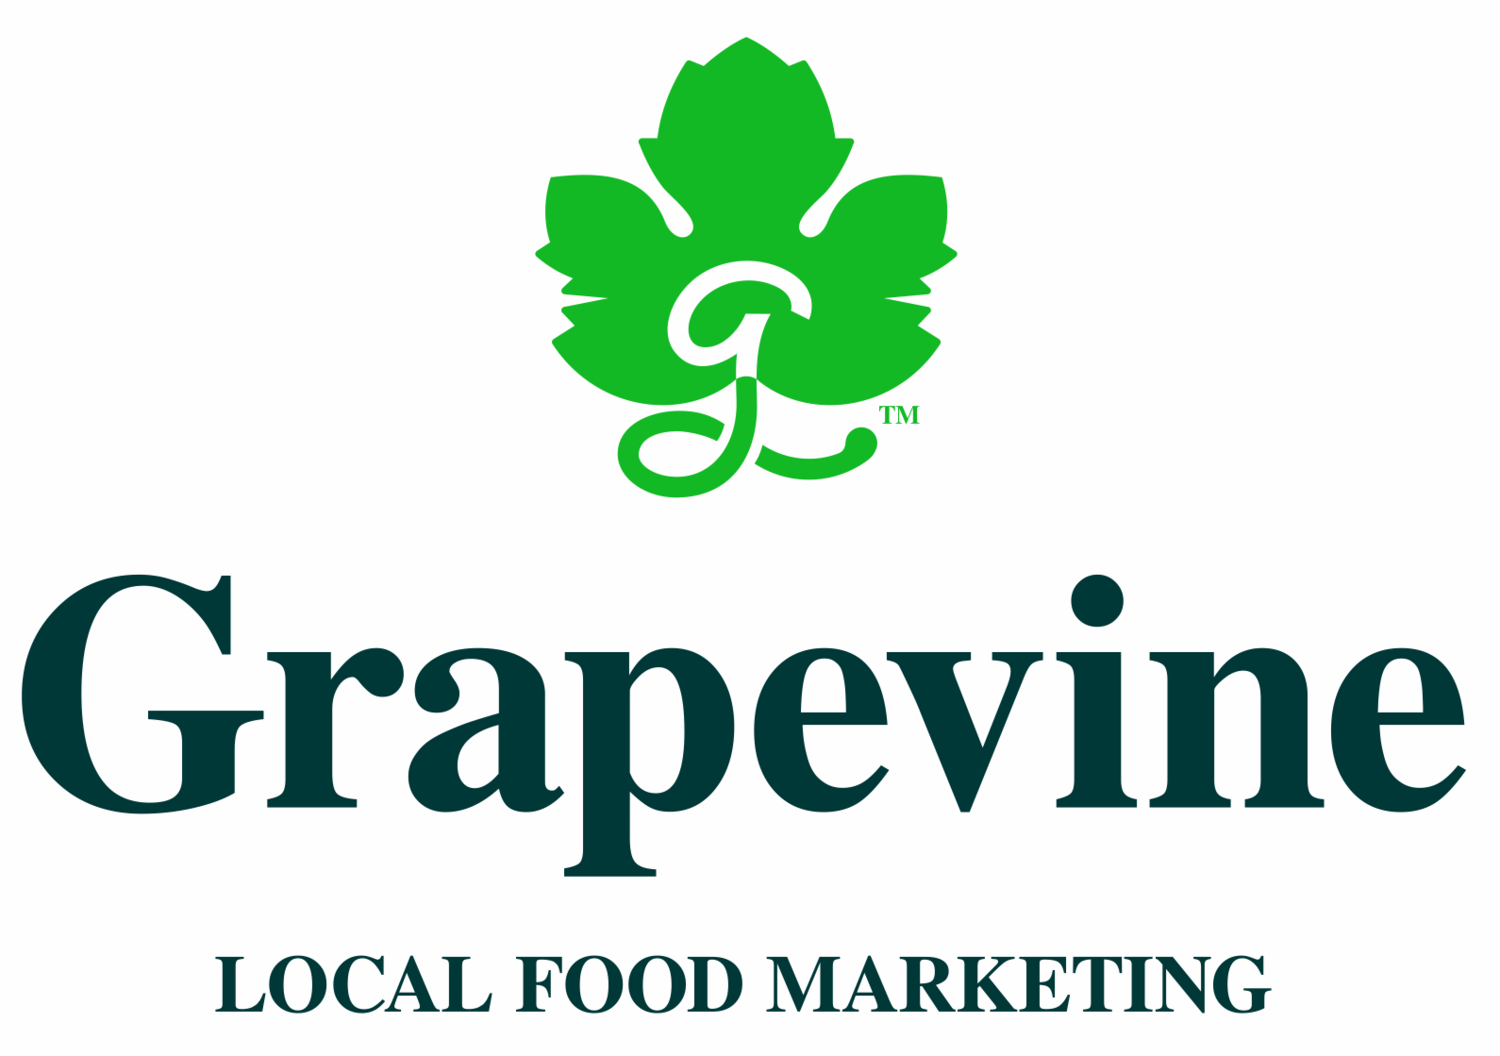 Grapevine Local Food Marketing